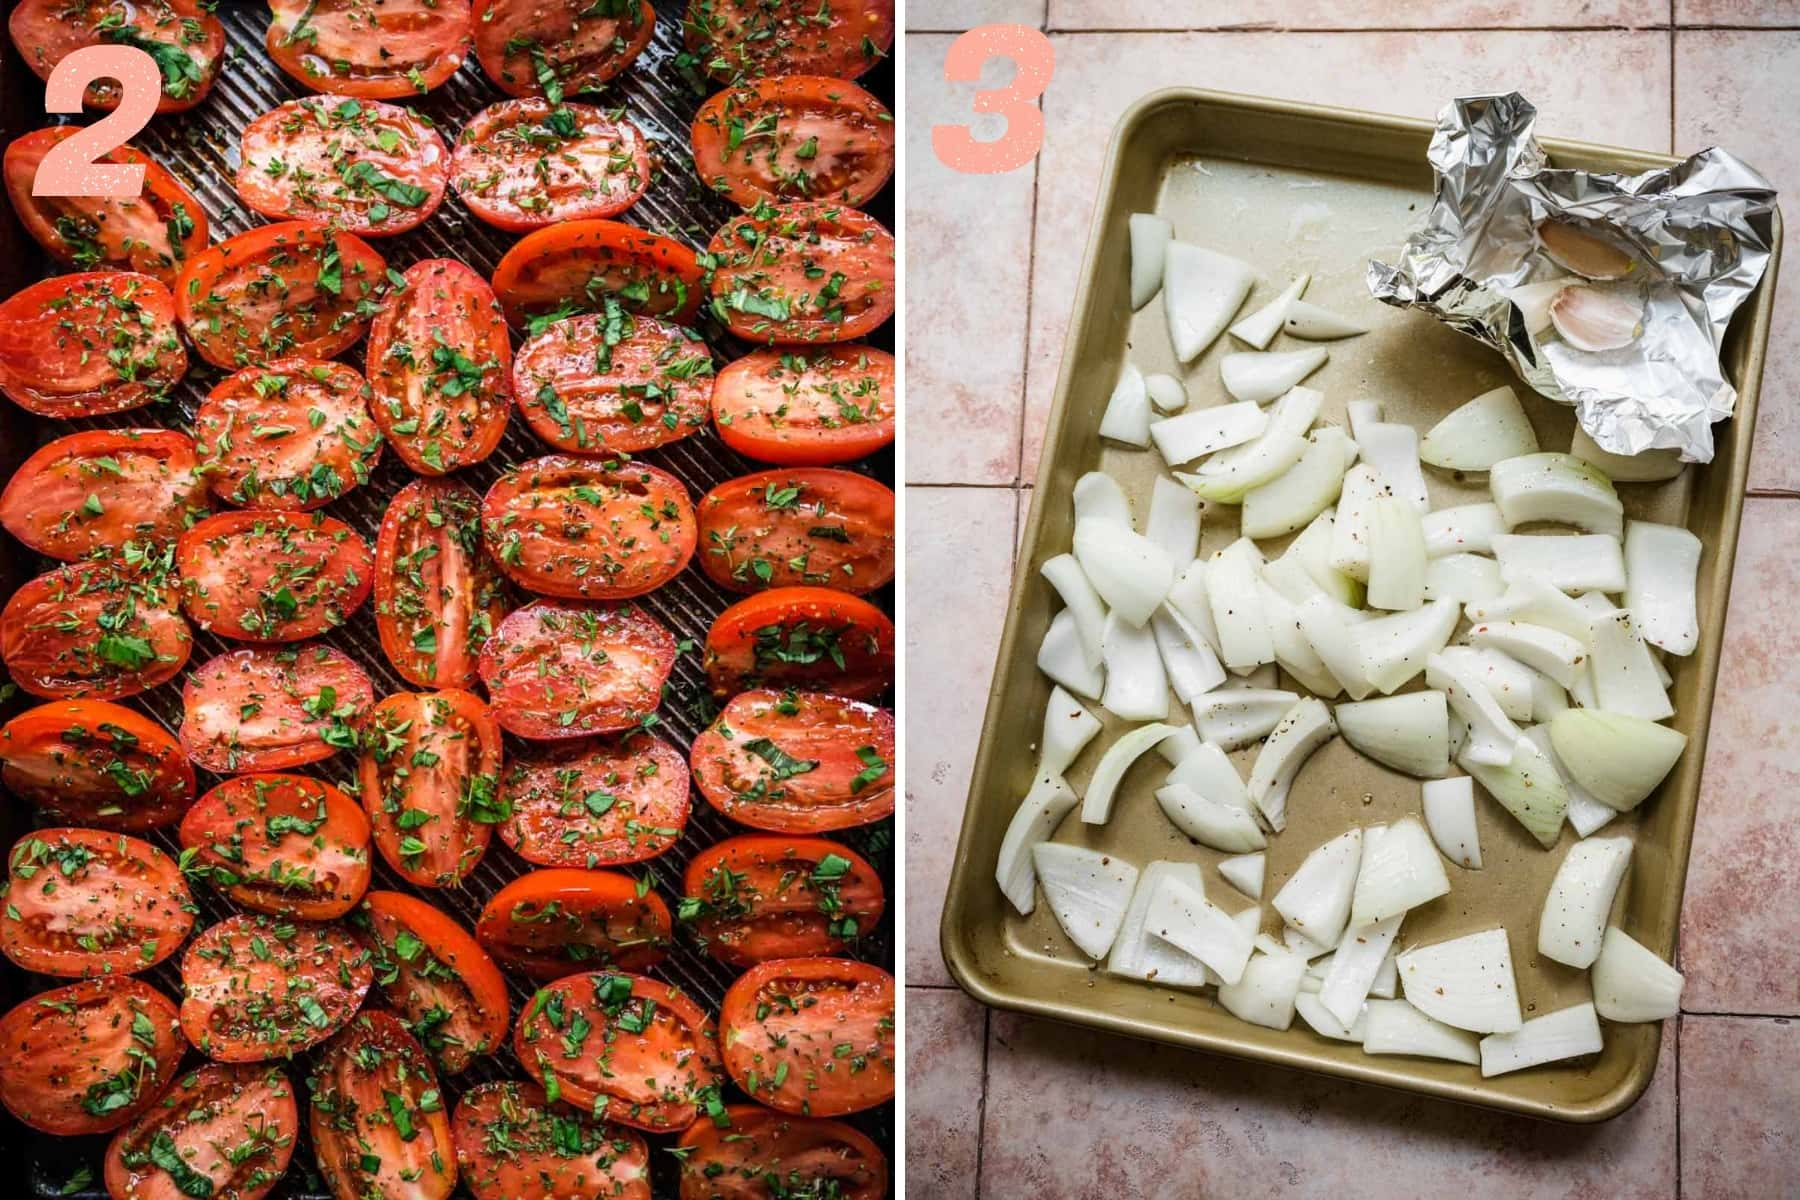 on the left: tomatoes on sheet pan before roasting. on the right: onions and garlic on sheet pan before roasting.